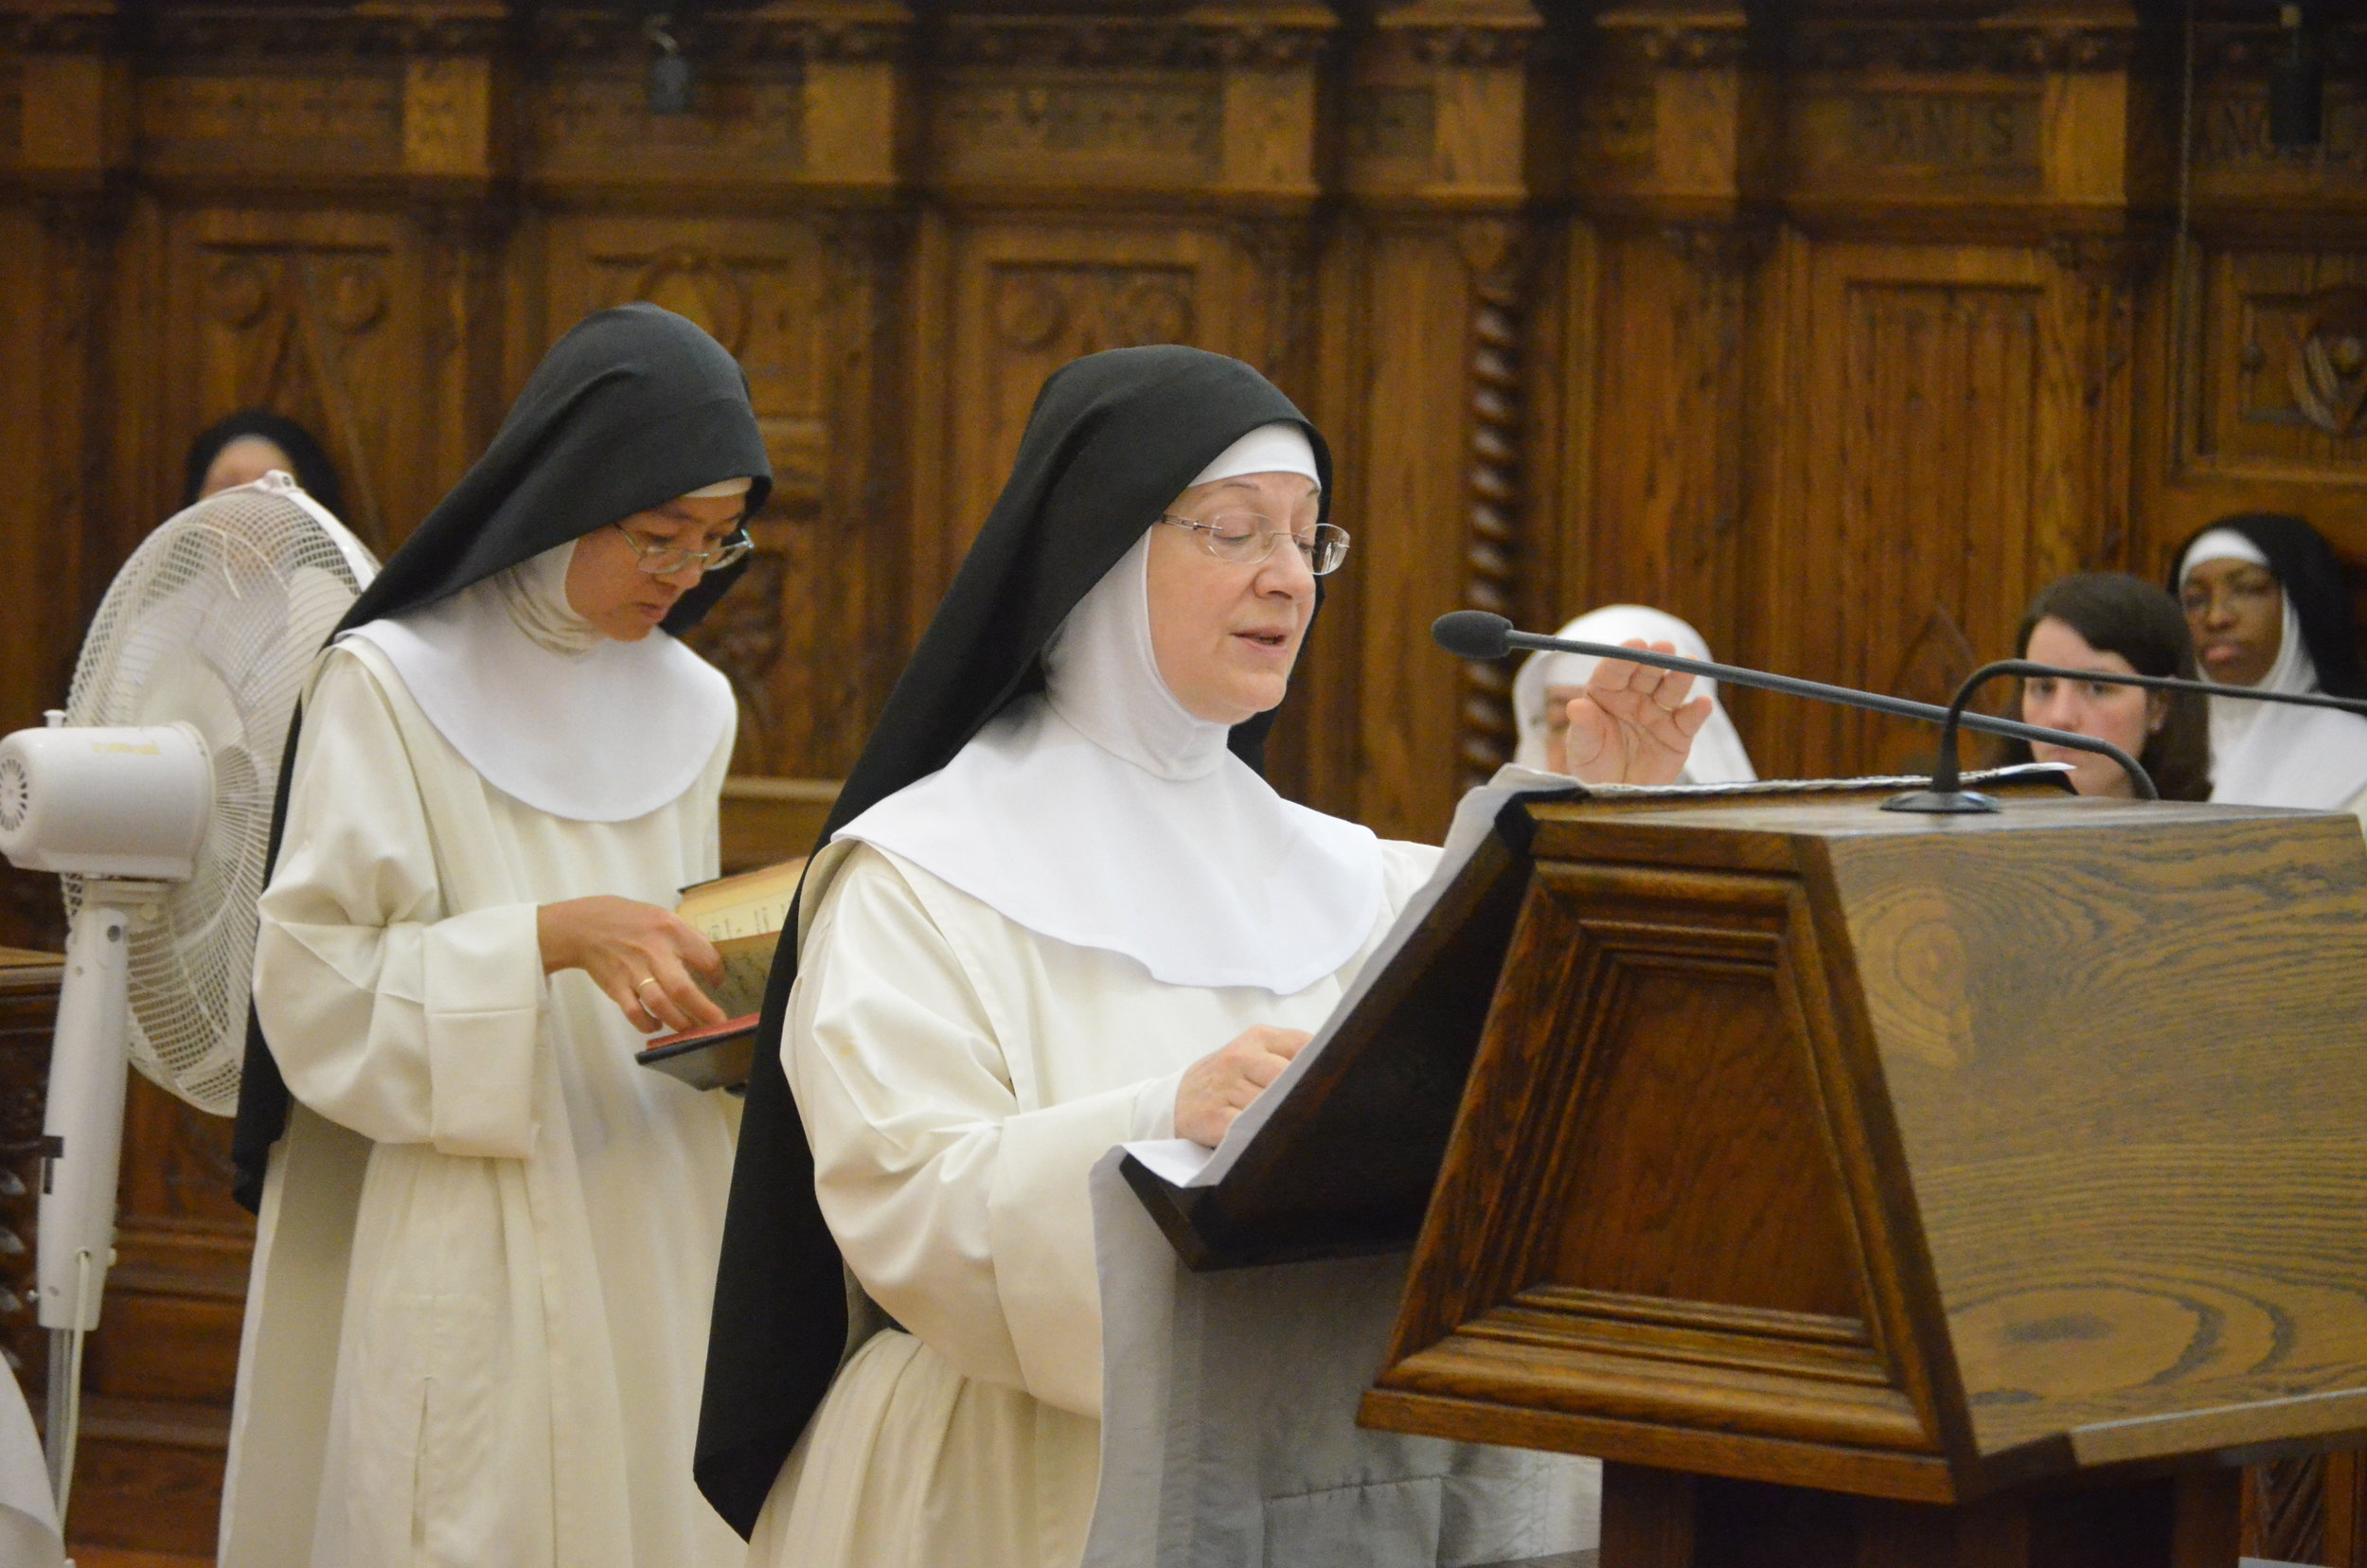 Sr. Denise Marie reads the second reading